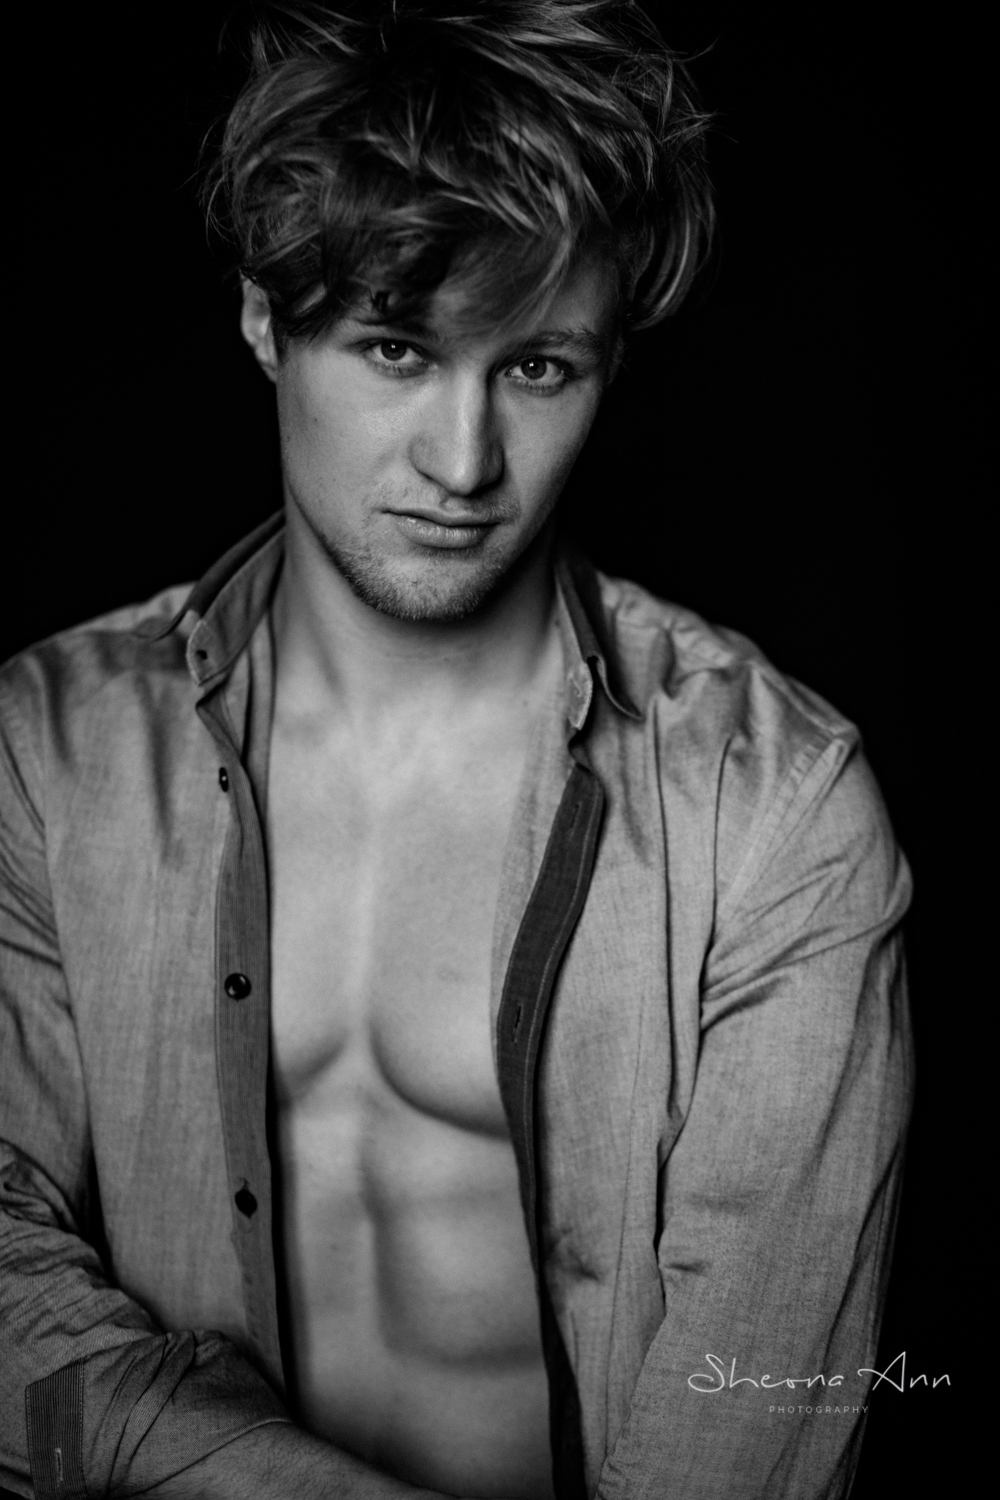 sexy-man-shirt-bw-portrait-Sheona-Ann-Photography (2 of 21).jpg